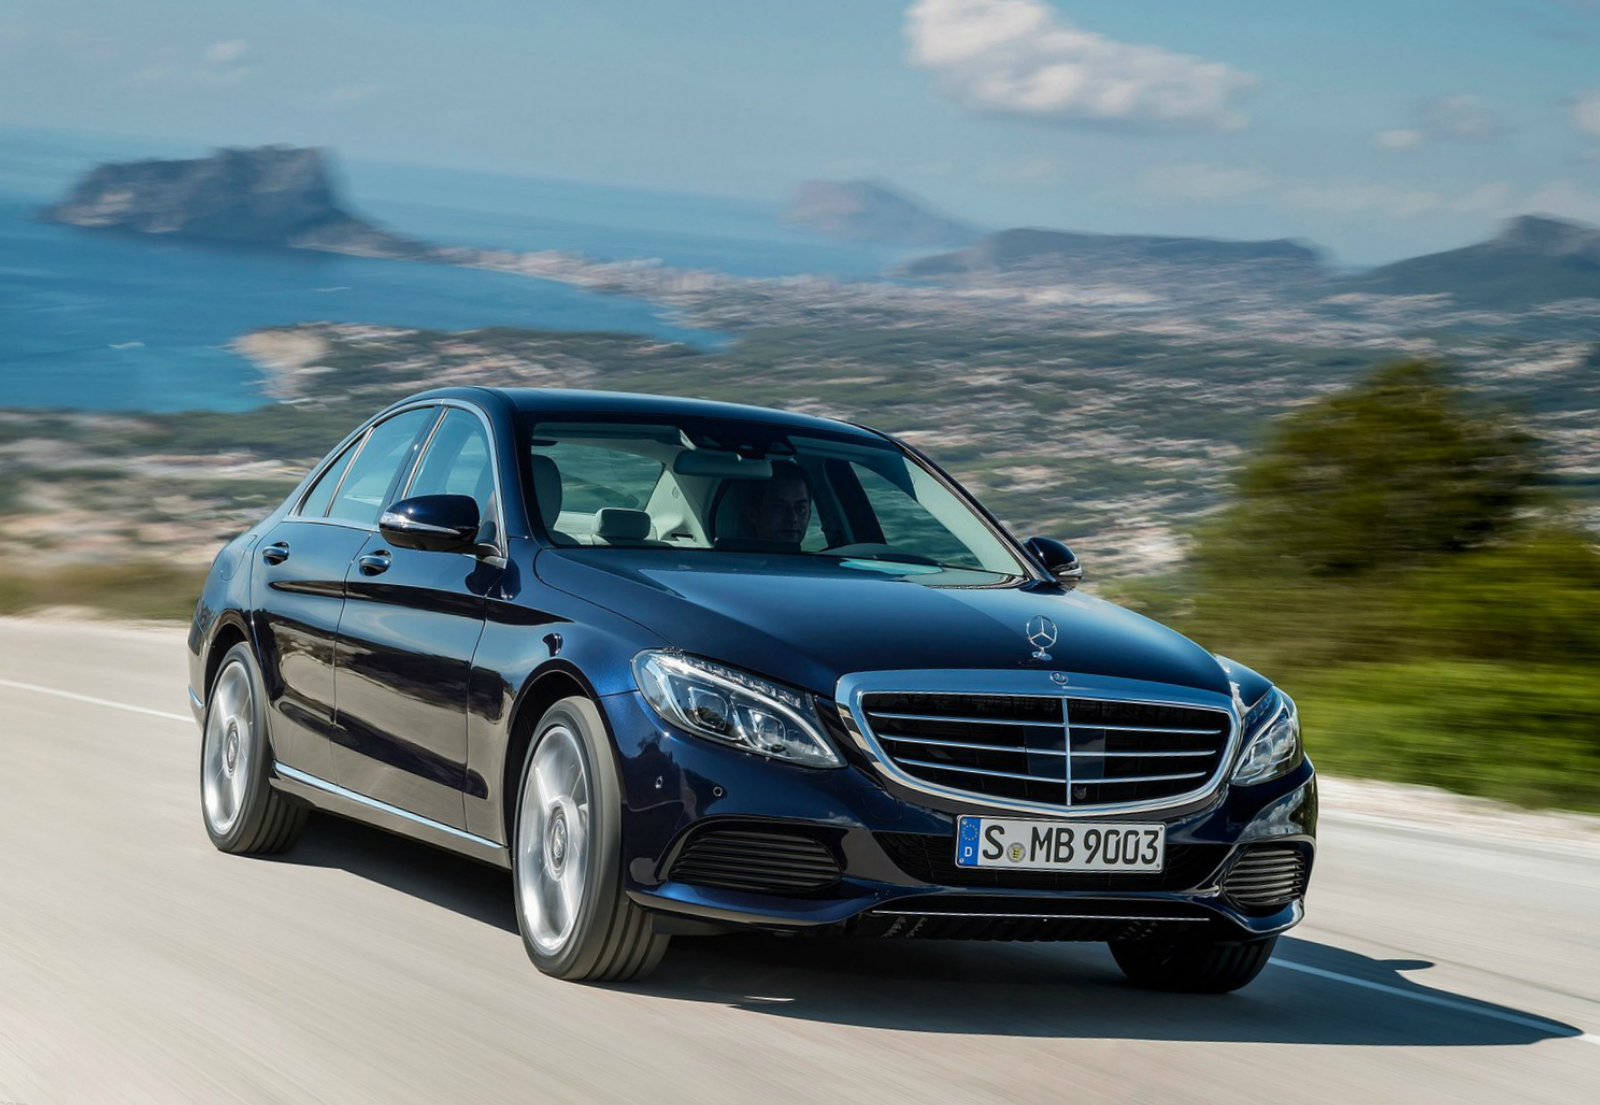 Mercedes benz c class 2015 reviews mercedes benz c class for Mercedes benz c class review